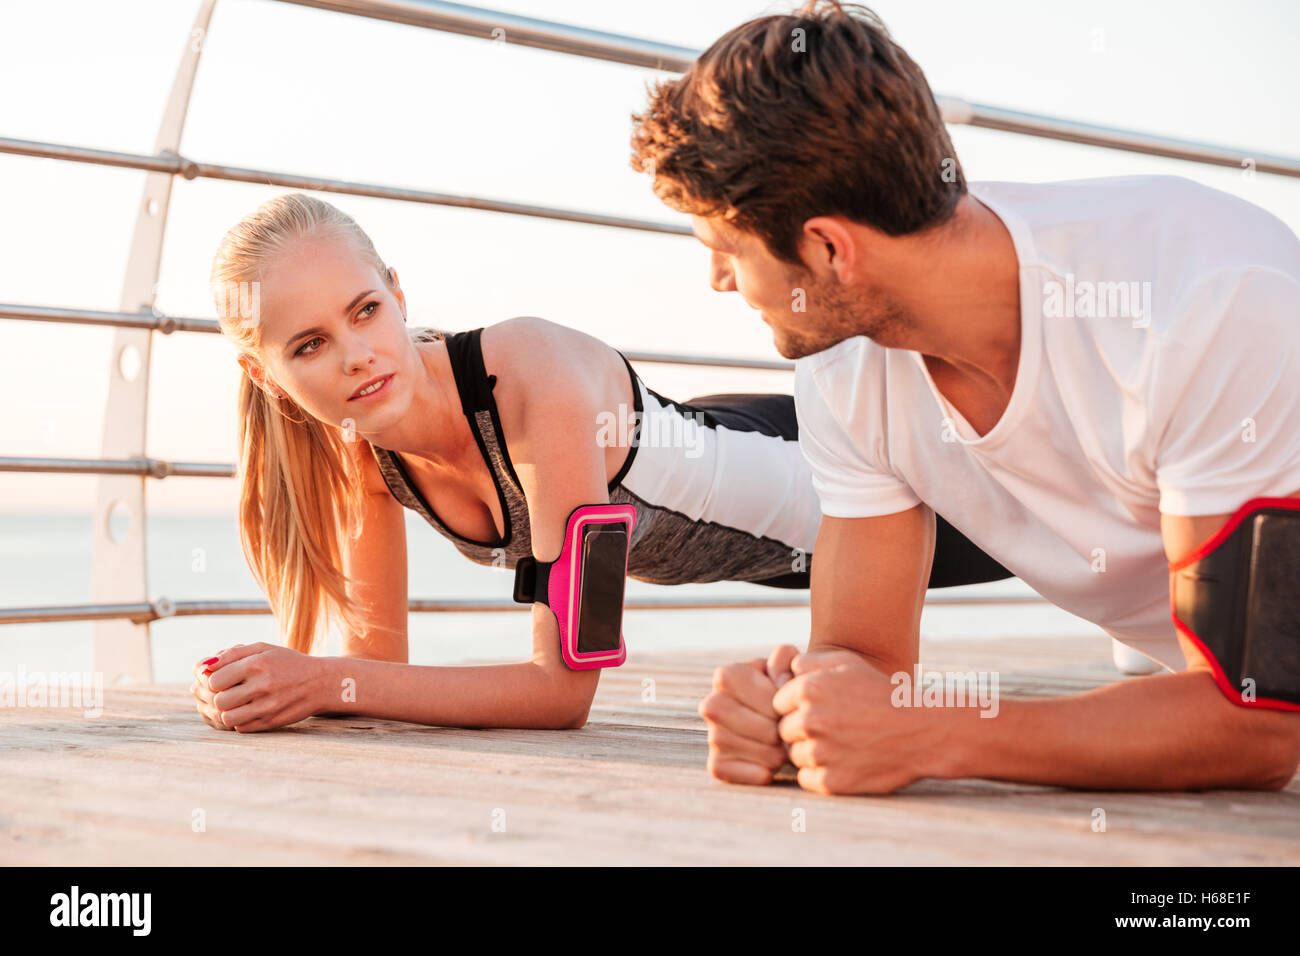 Close up of a young fitness woman and man doing plank exercise together outdoors at the pier - Stock Image